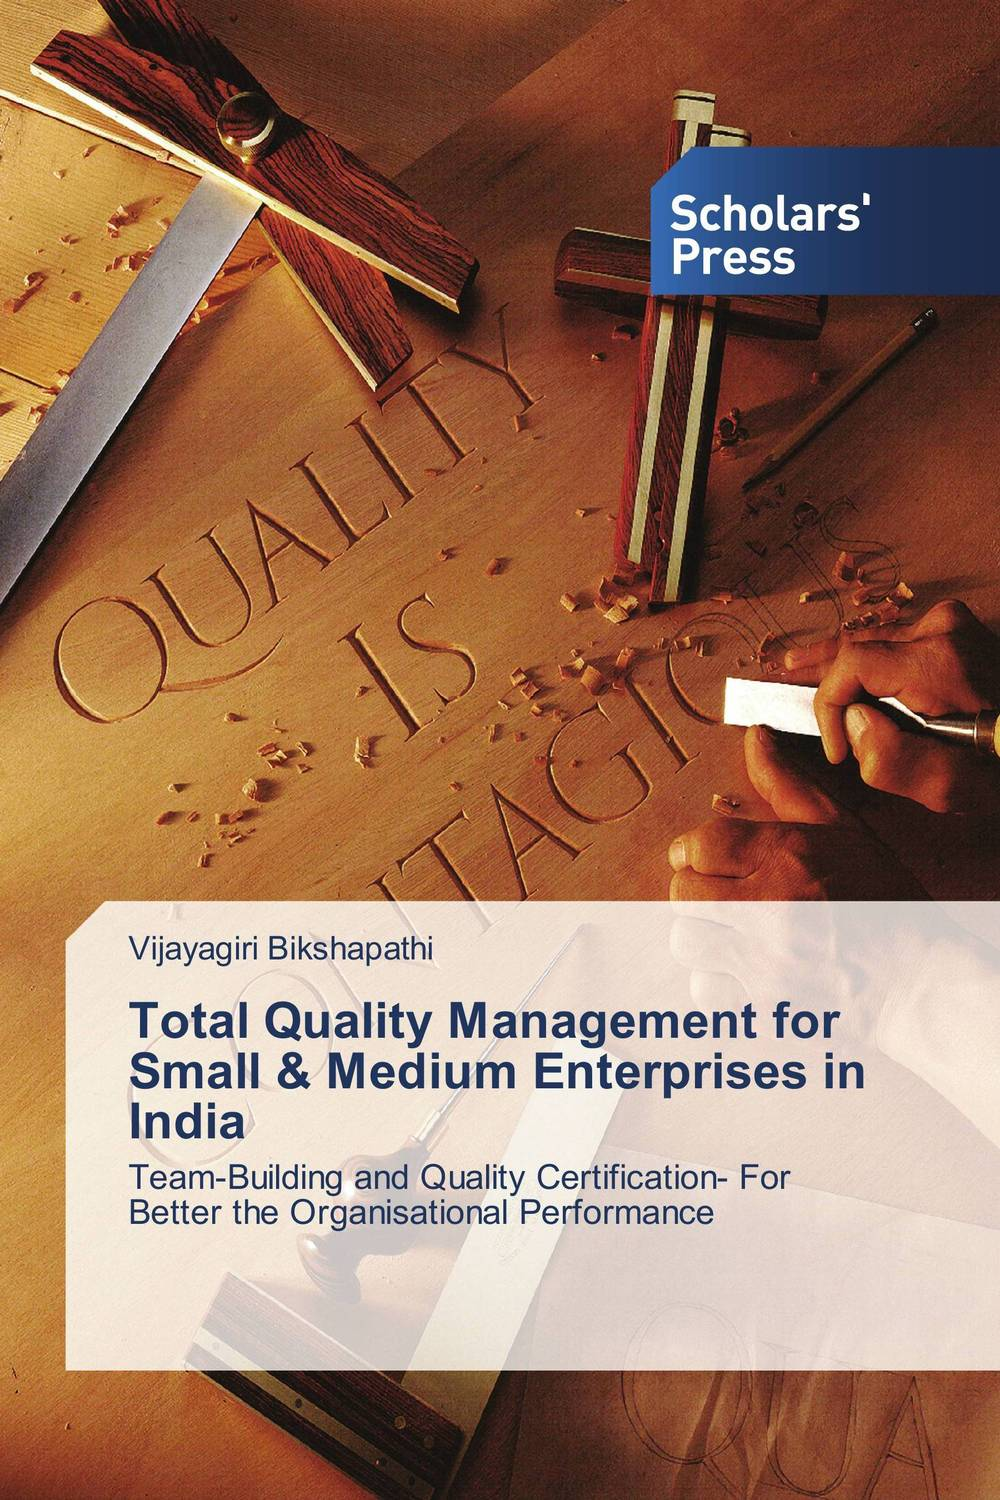 Total Quality Management for Small & Medium Enterprises in India